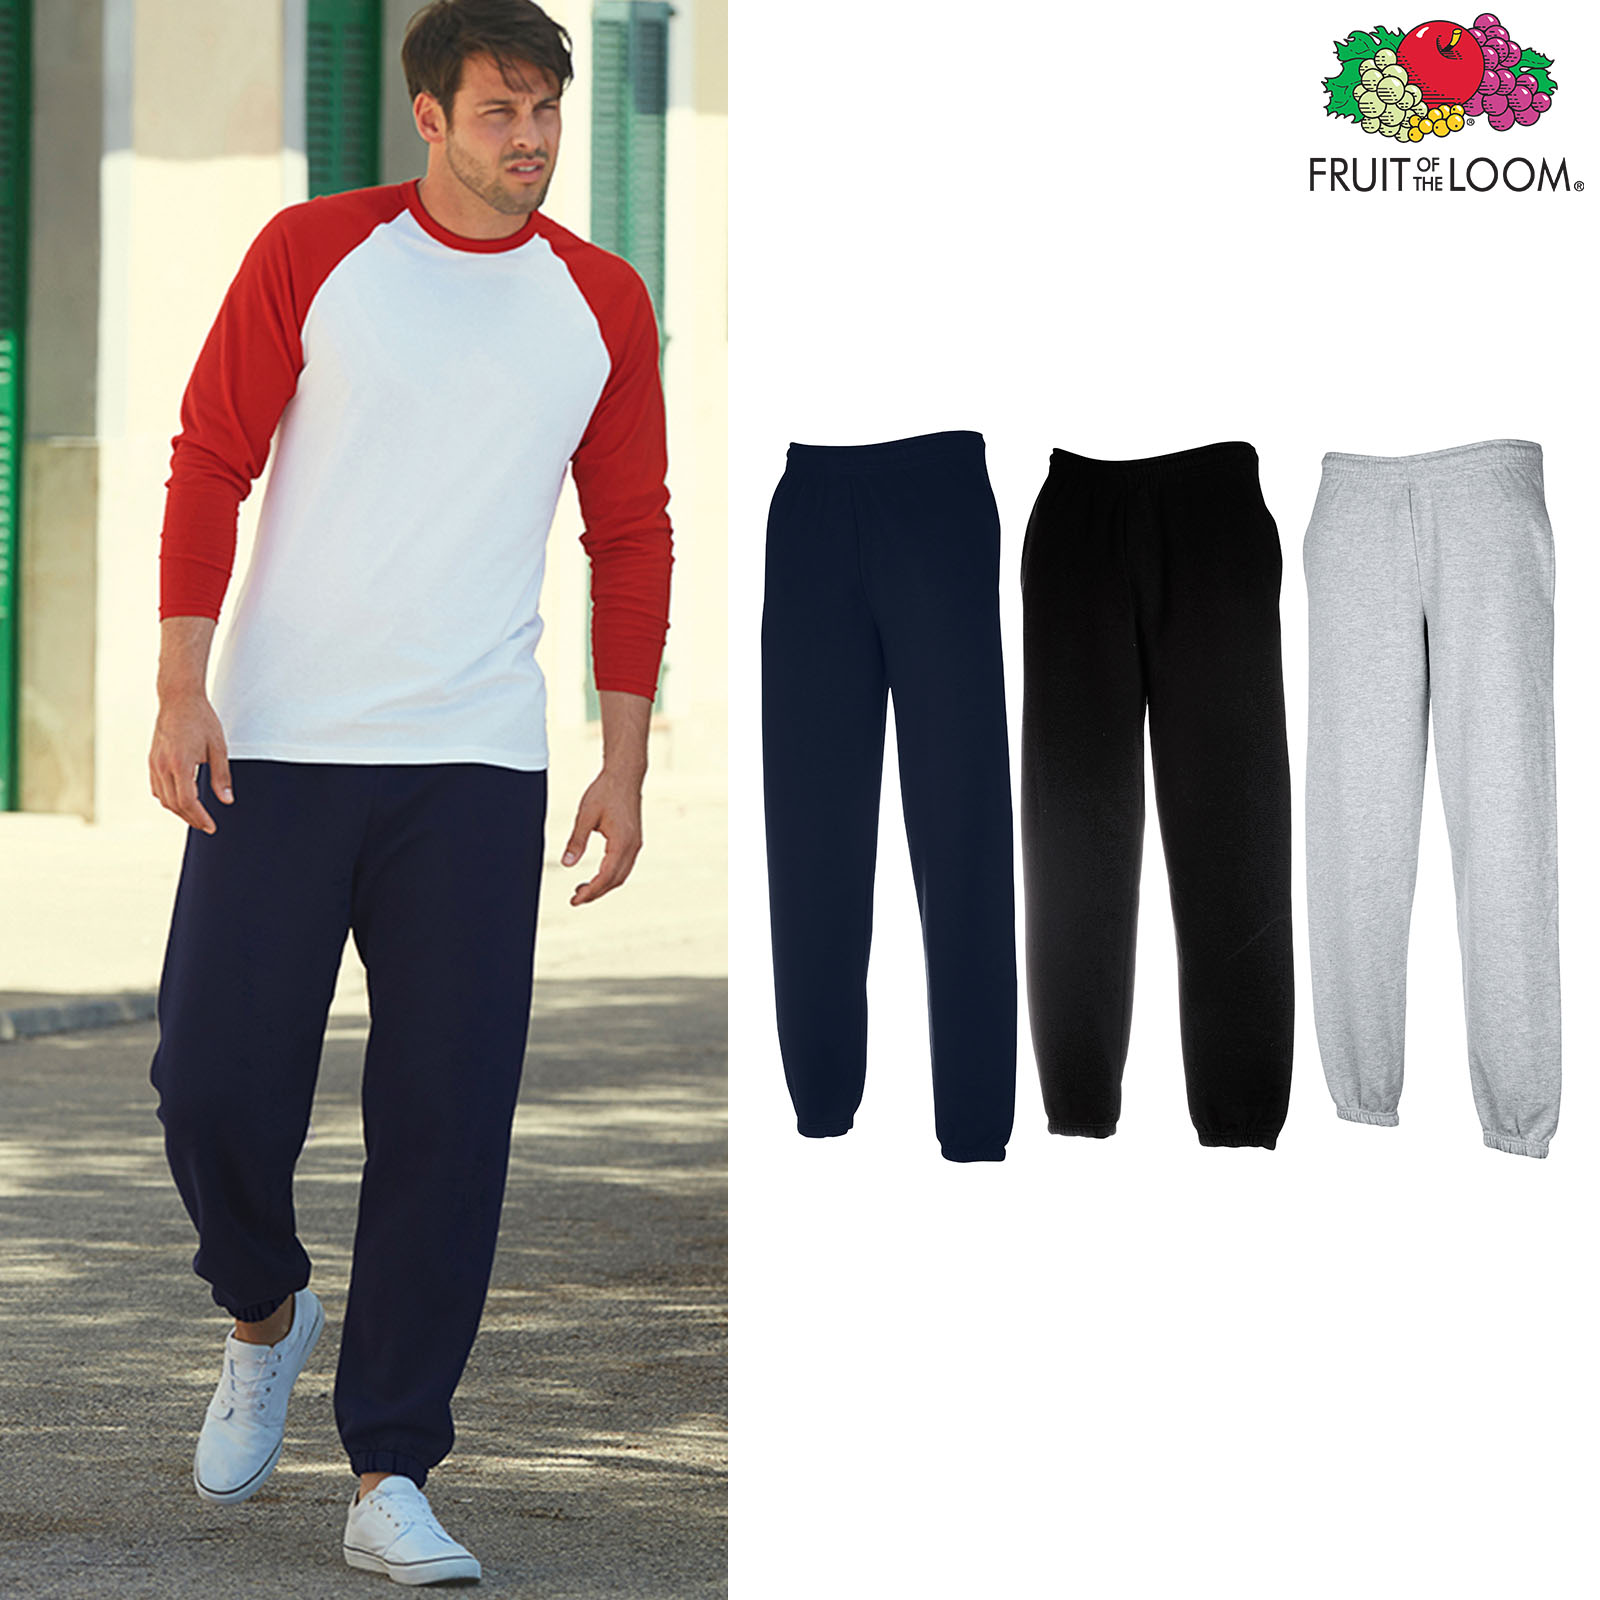 Activewear Bottoms Fruit Of The Loom Mens Classic Elasticated Cuffs Jog Pants Pockets Sweat Bottoms Clothing, Shoes & Accessories